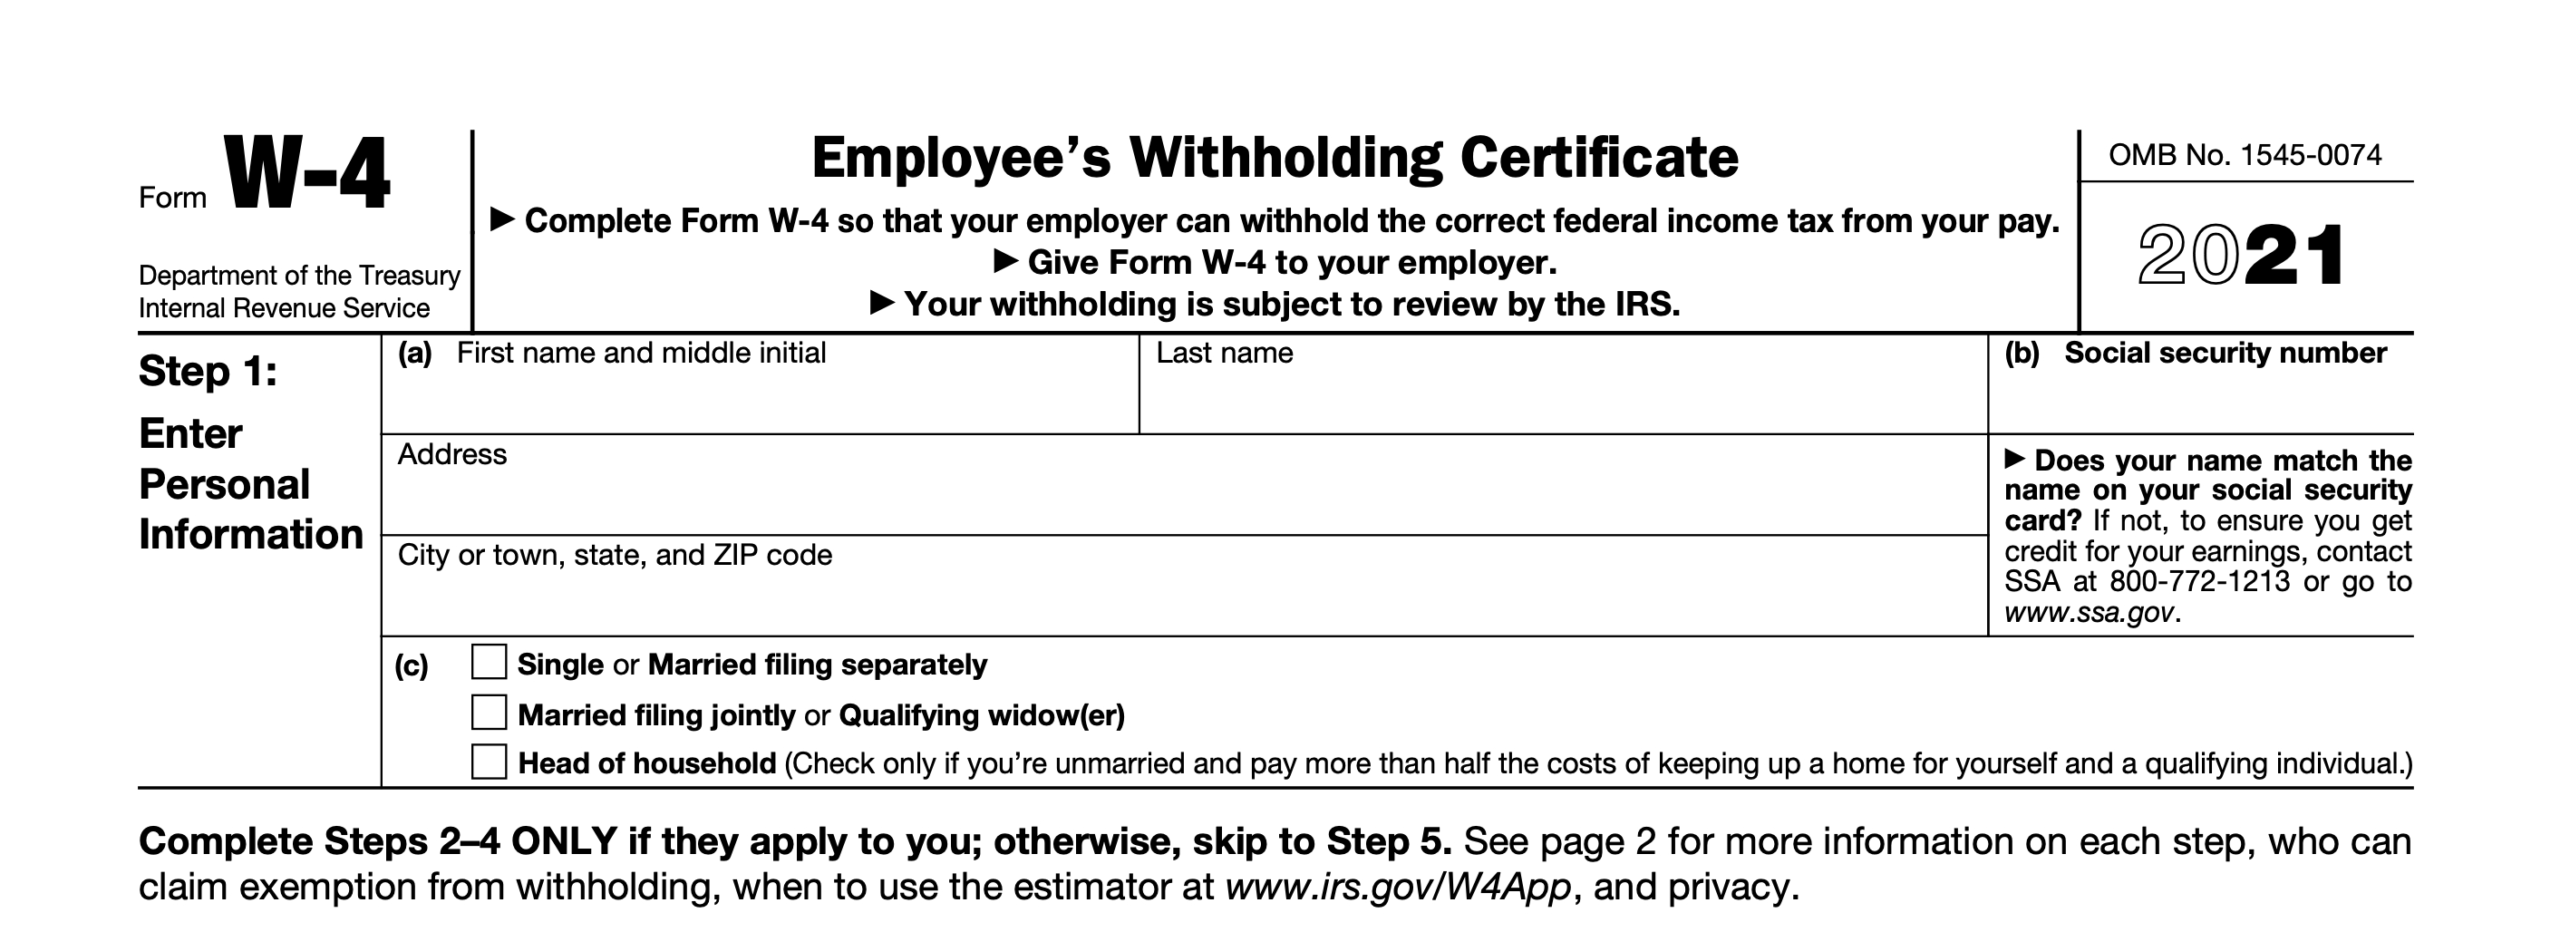 2021 Irs Form W-4: Simple Instructions + Pdf Download throughout Irs Forms 2021 Printable